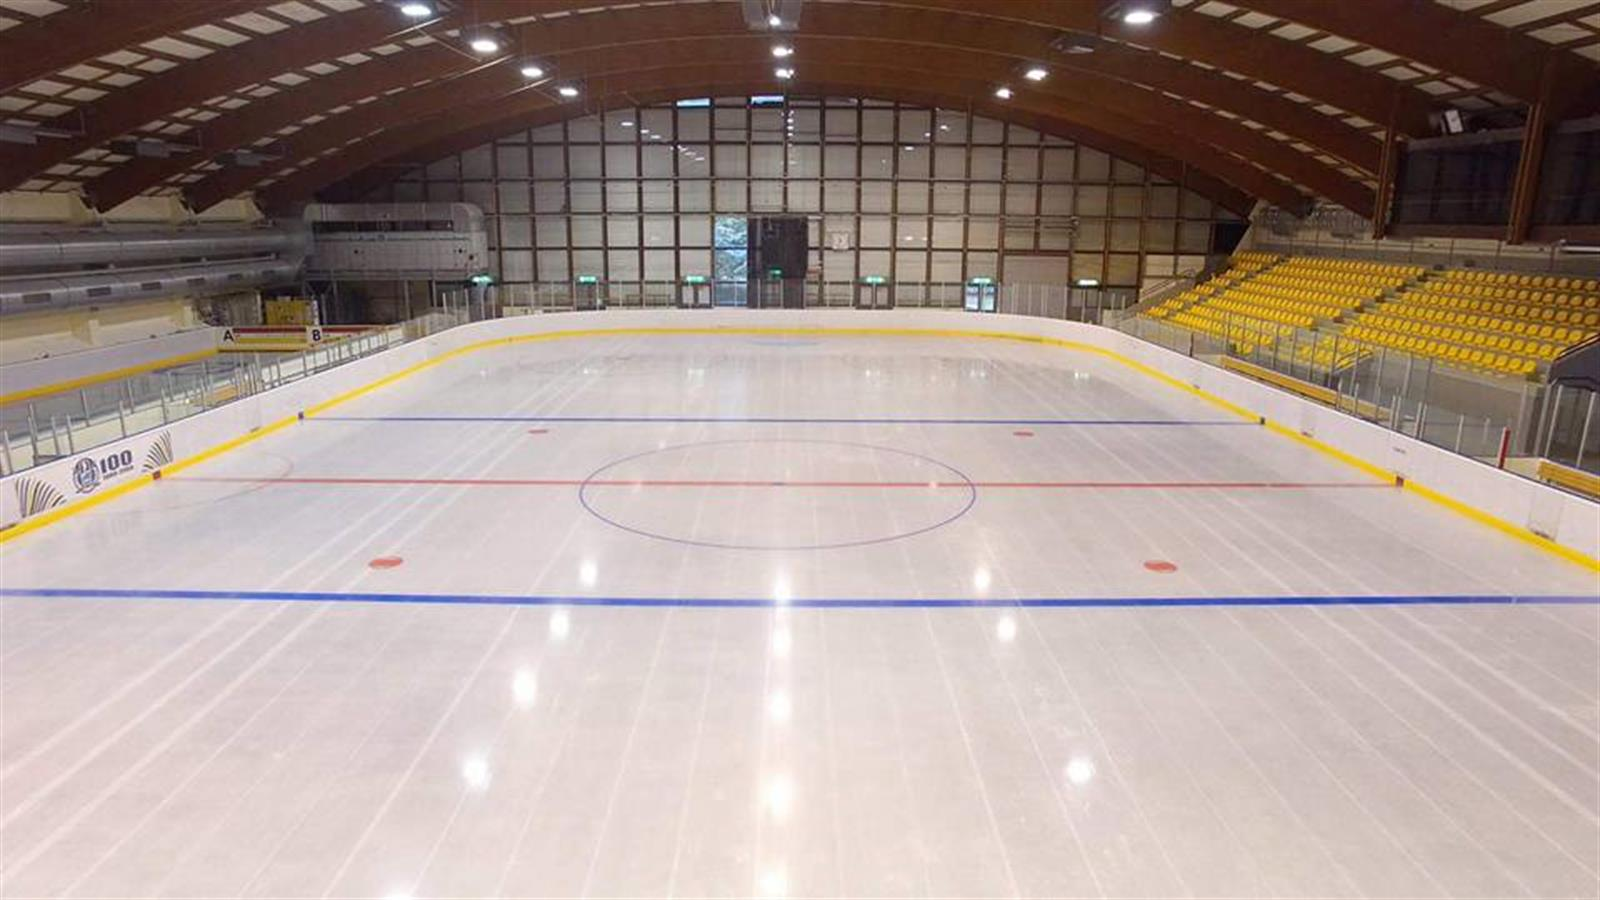 BREAKING NEWS: Olympic Qualifiers will now be played in Kockelscheuer NOV 8-10